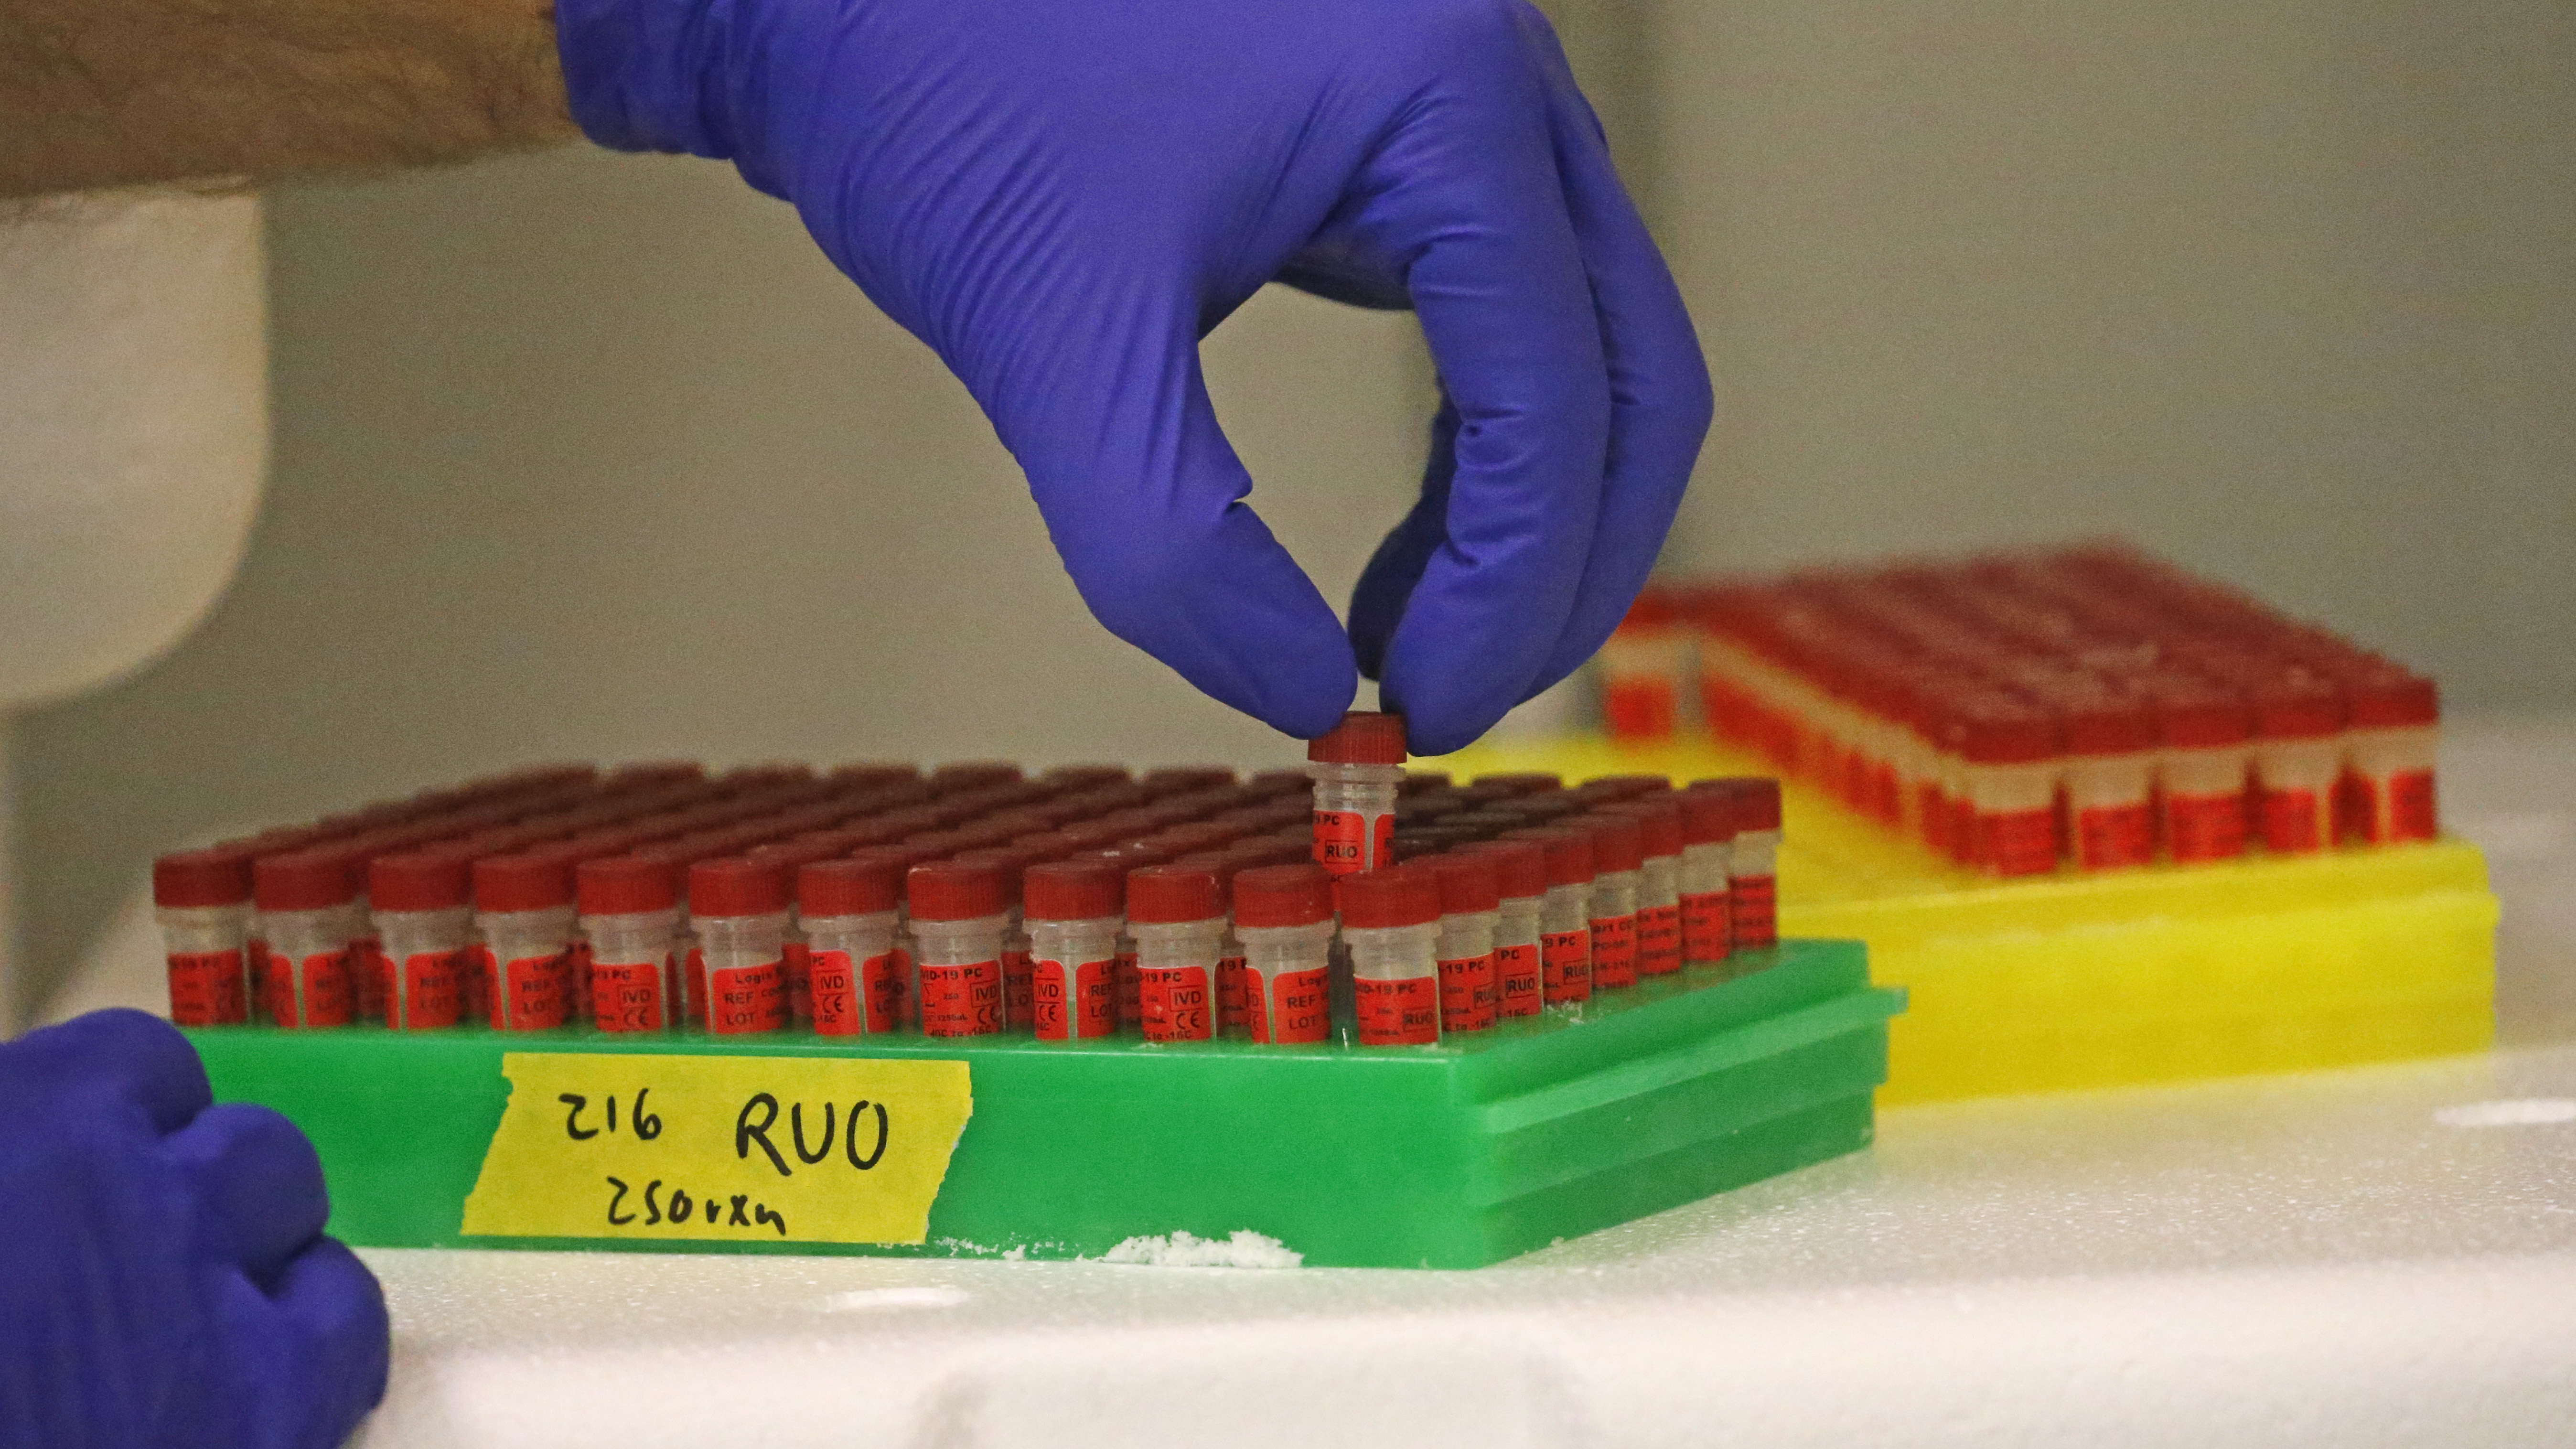 Stock Sales By Leaders At Coronavirus Testing Company Raise Legal Concerns